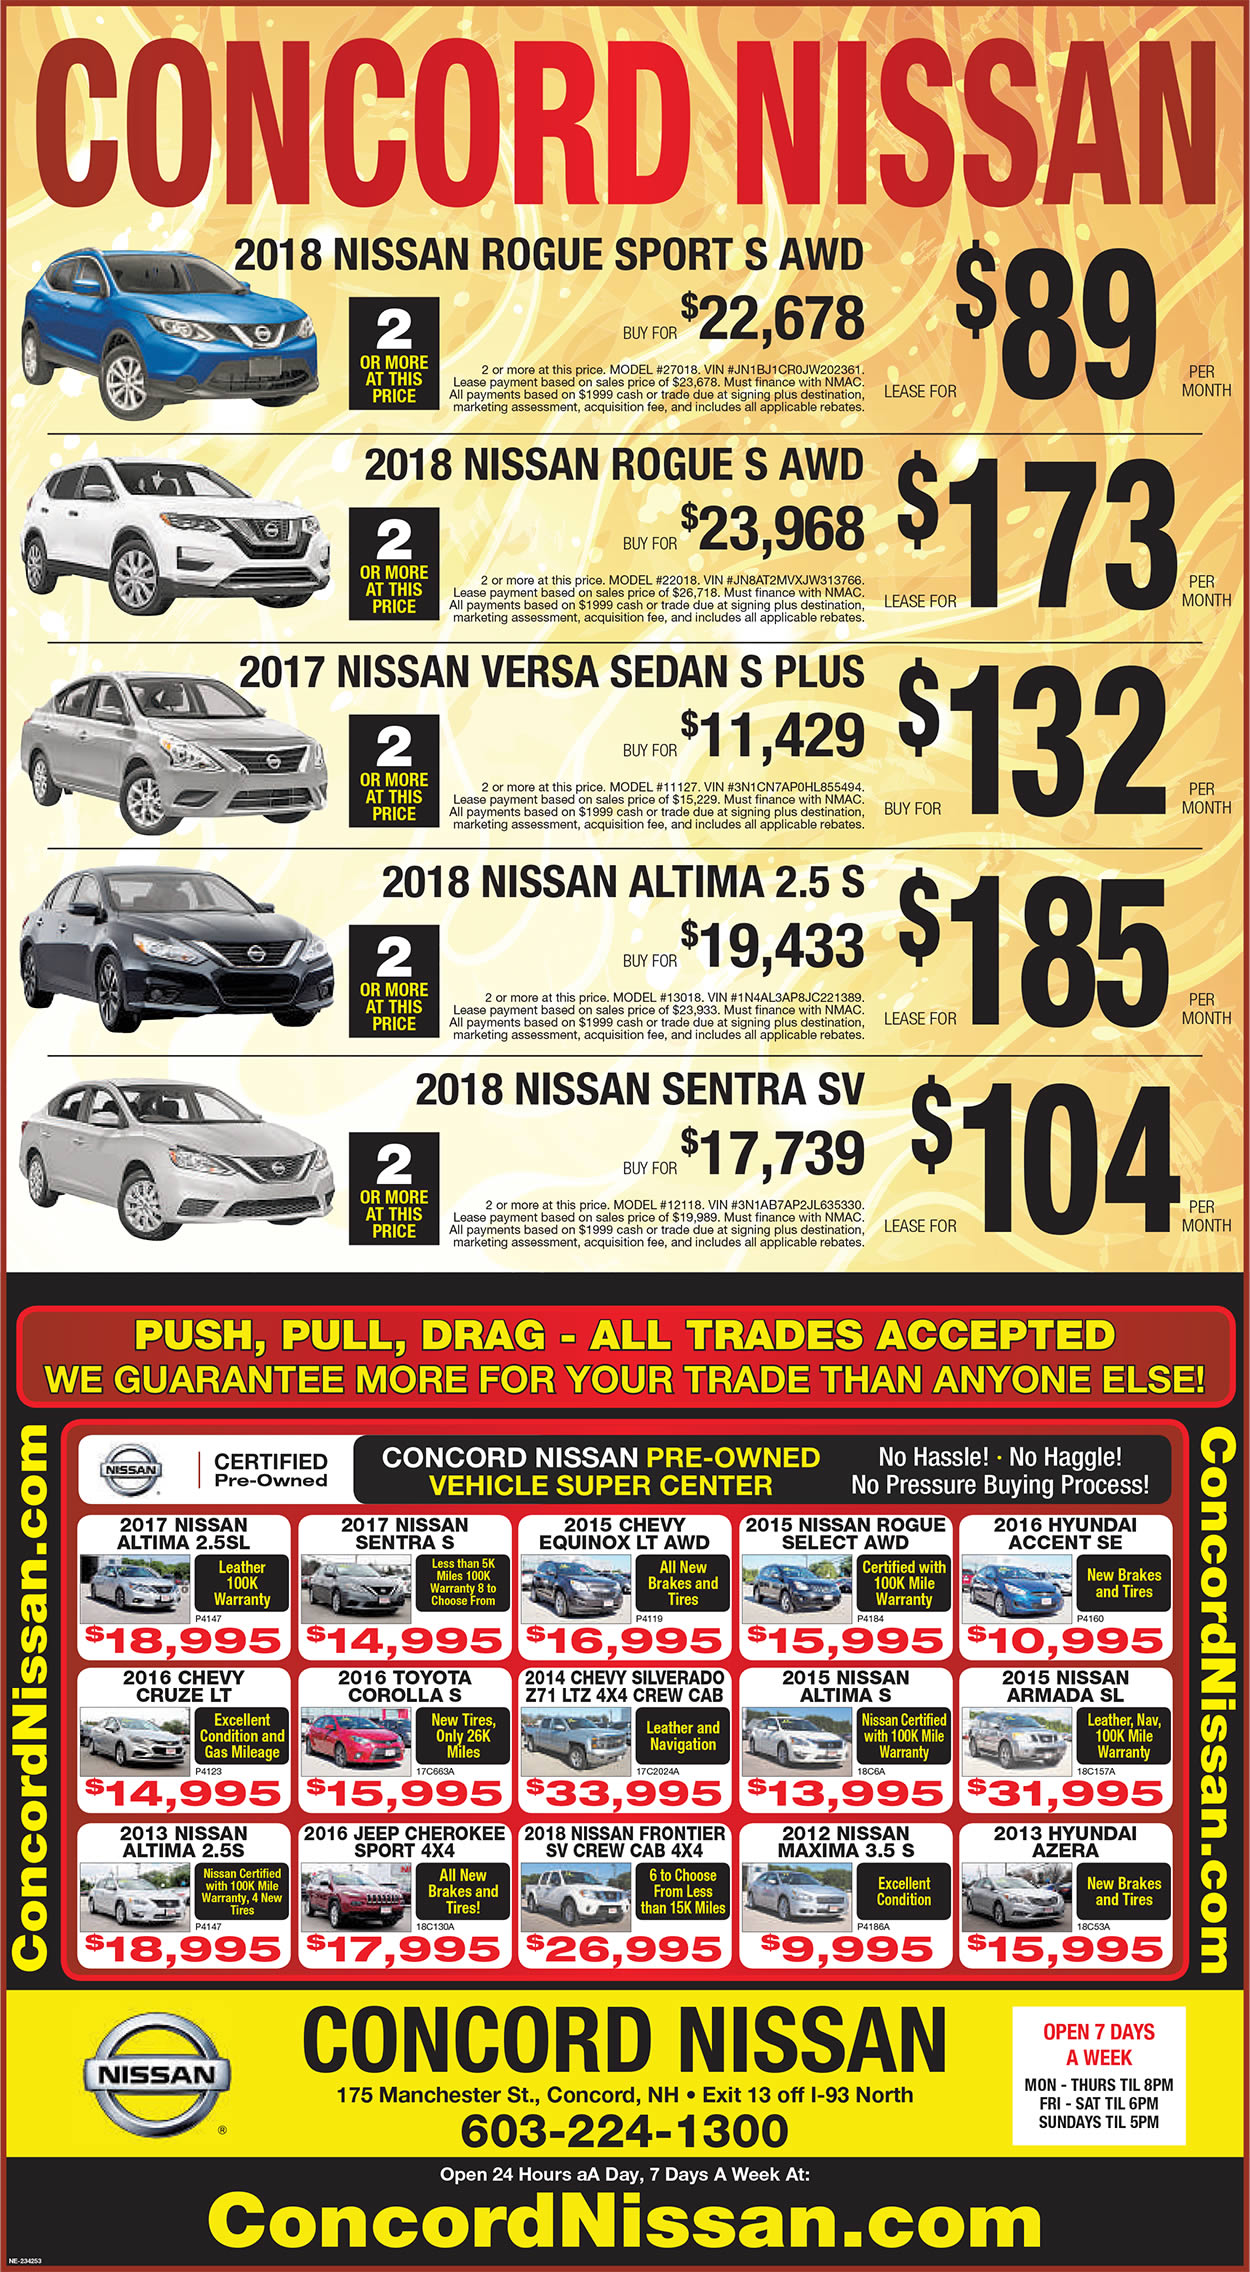 Concord Nissan Specials and Lease Deals